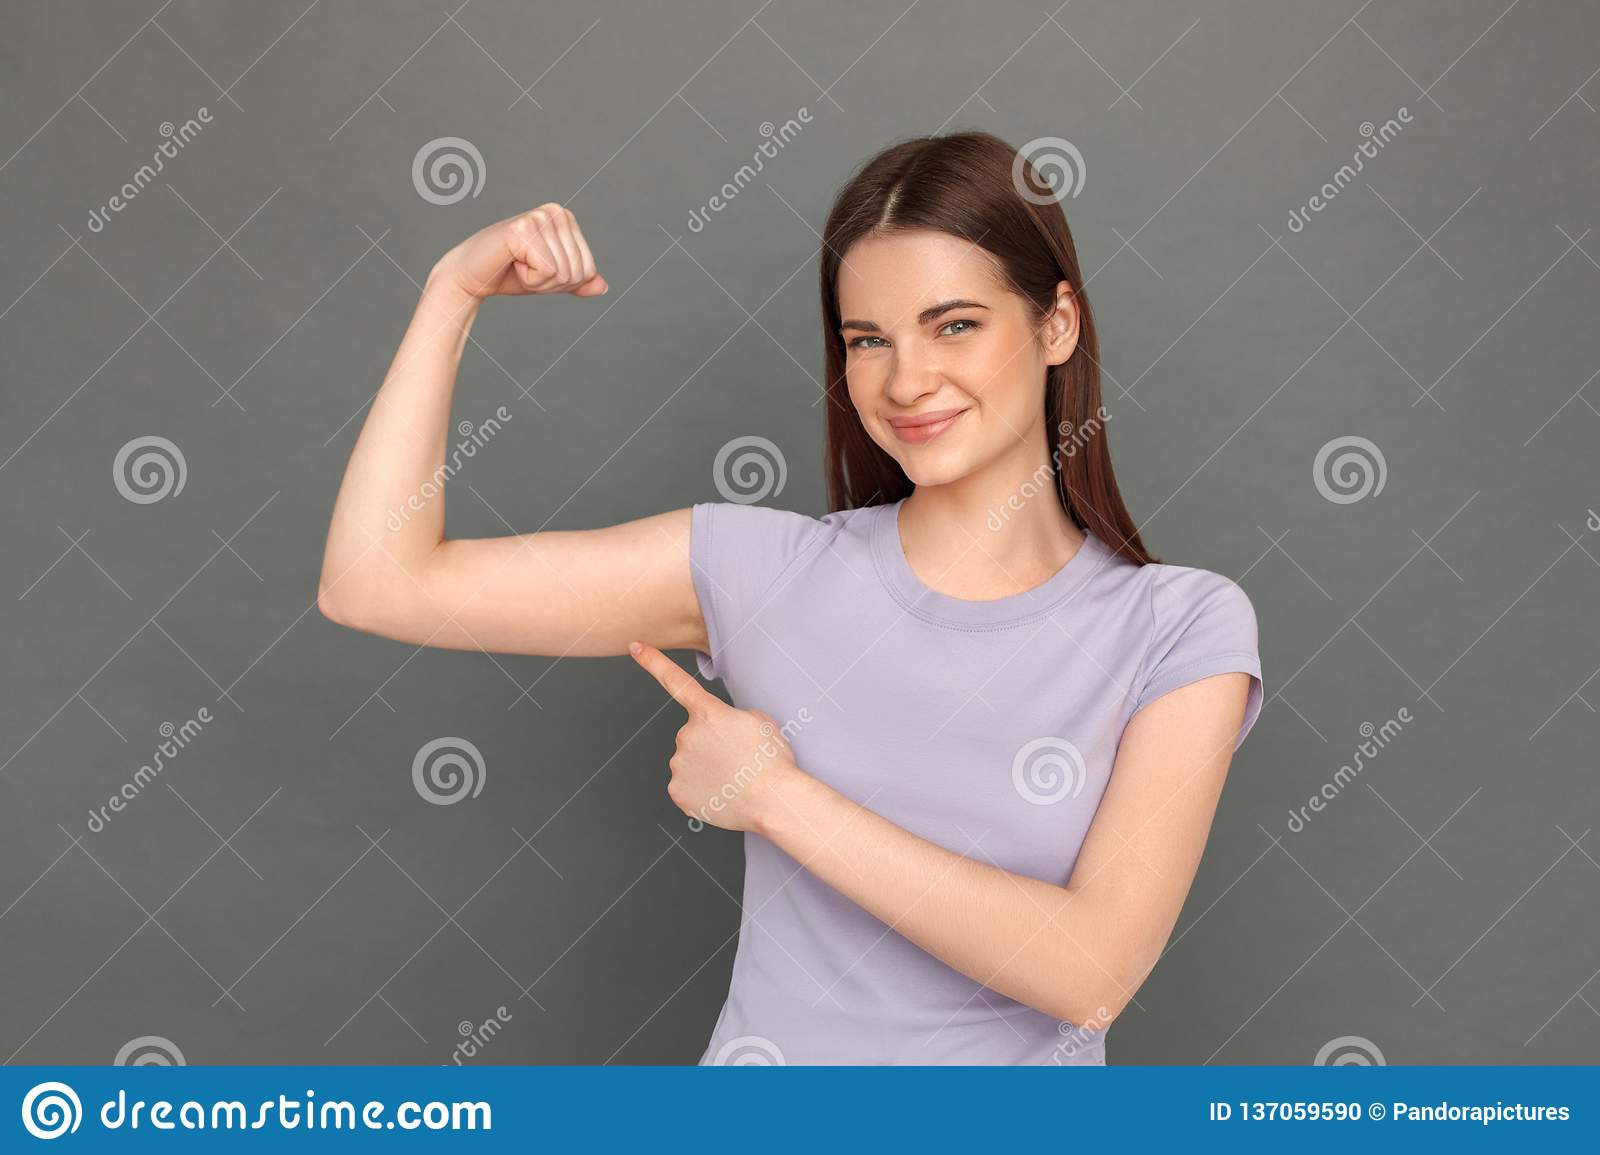 Freestyle. Young girl standing isolated on grey showing arm muscle smiling confident close-up